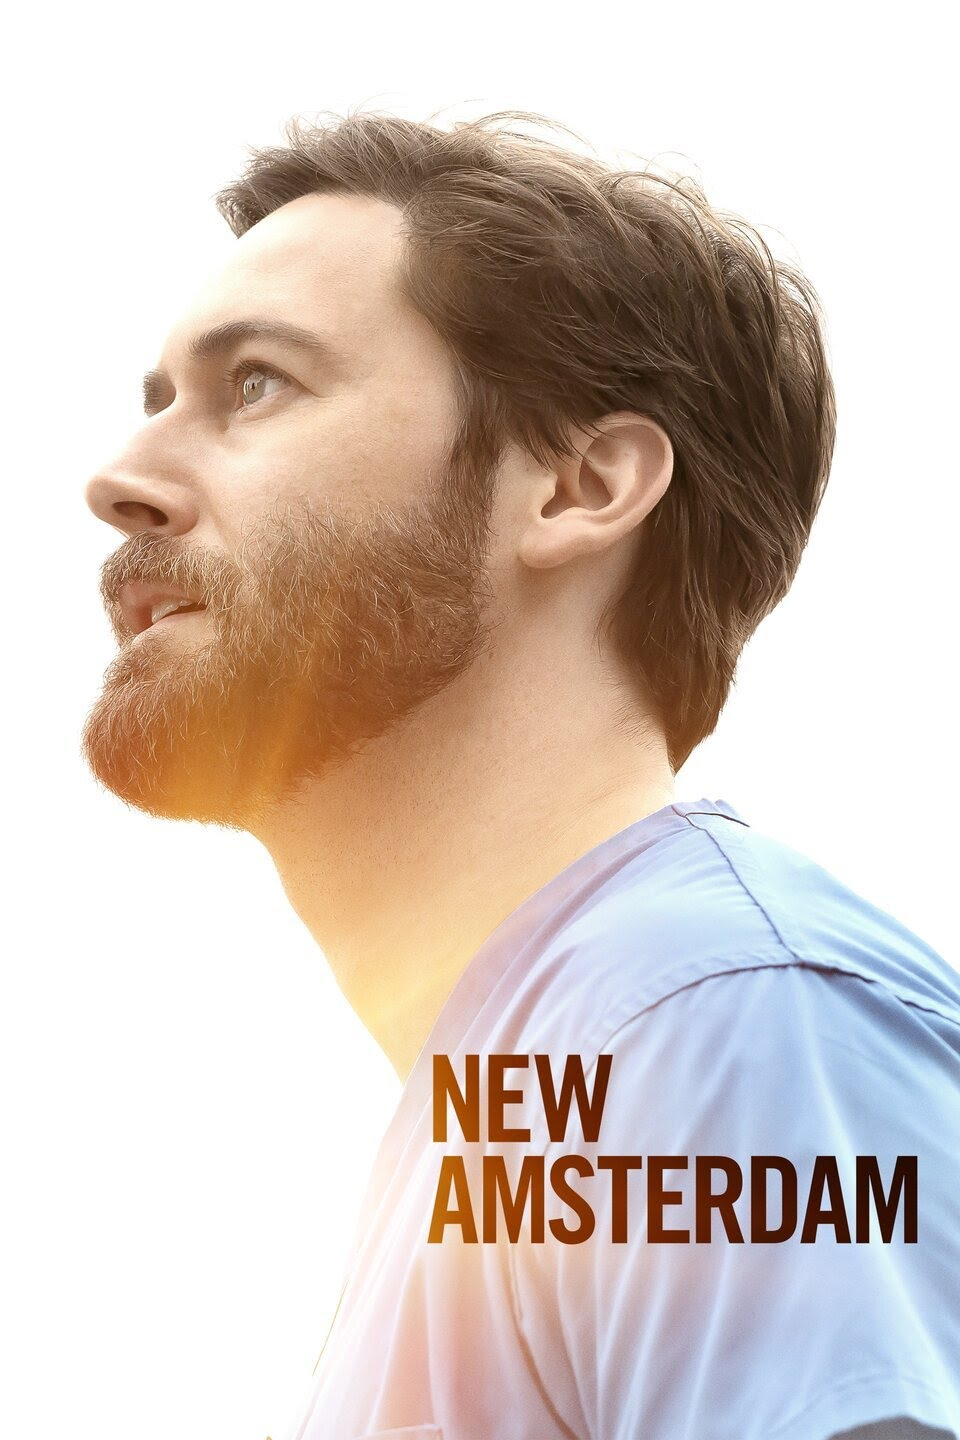 New Amsterdam - Season 3 Episode 4 - This Is All I Need